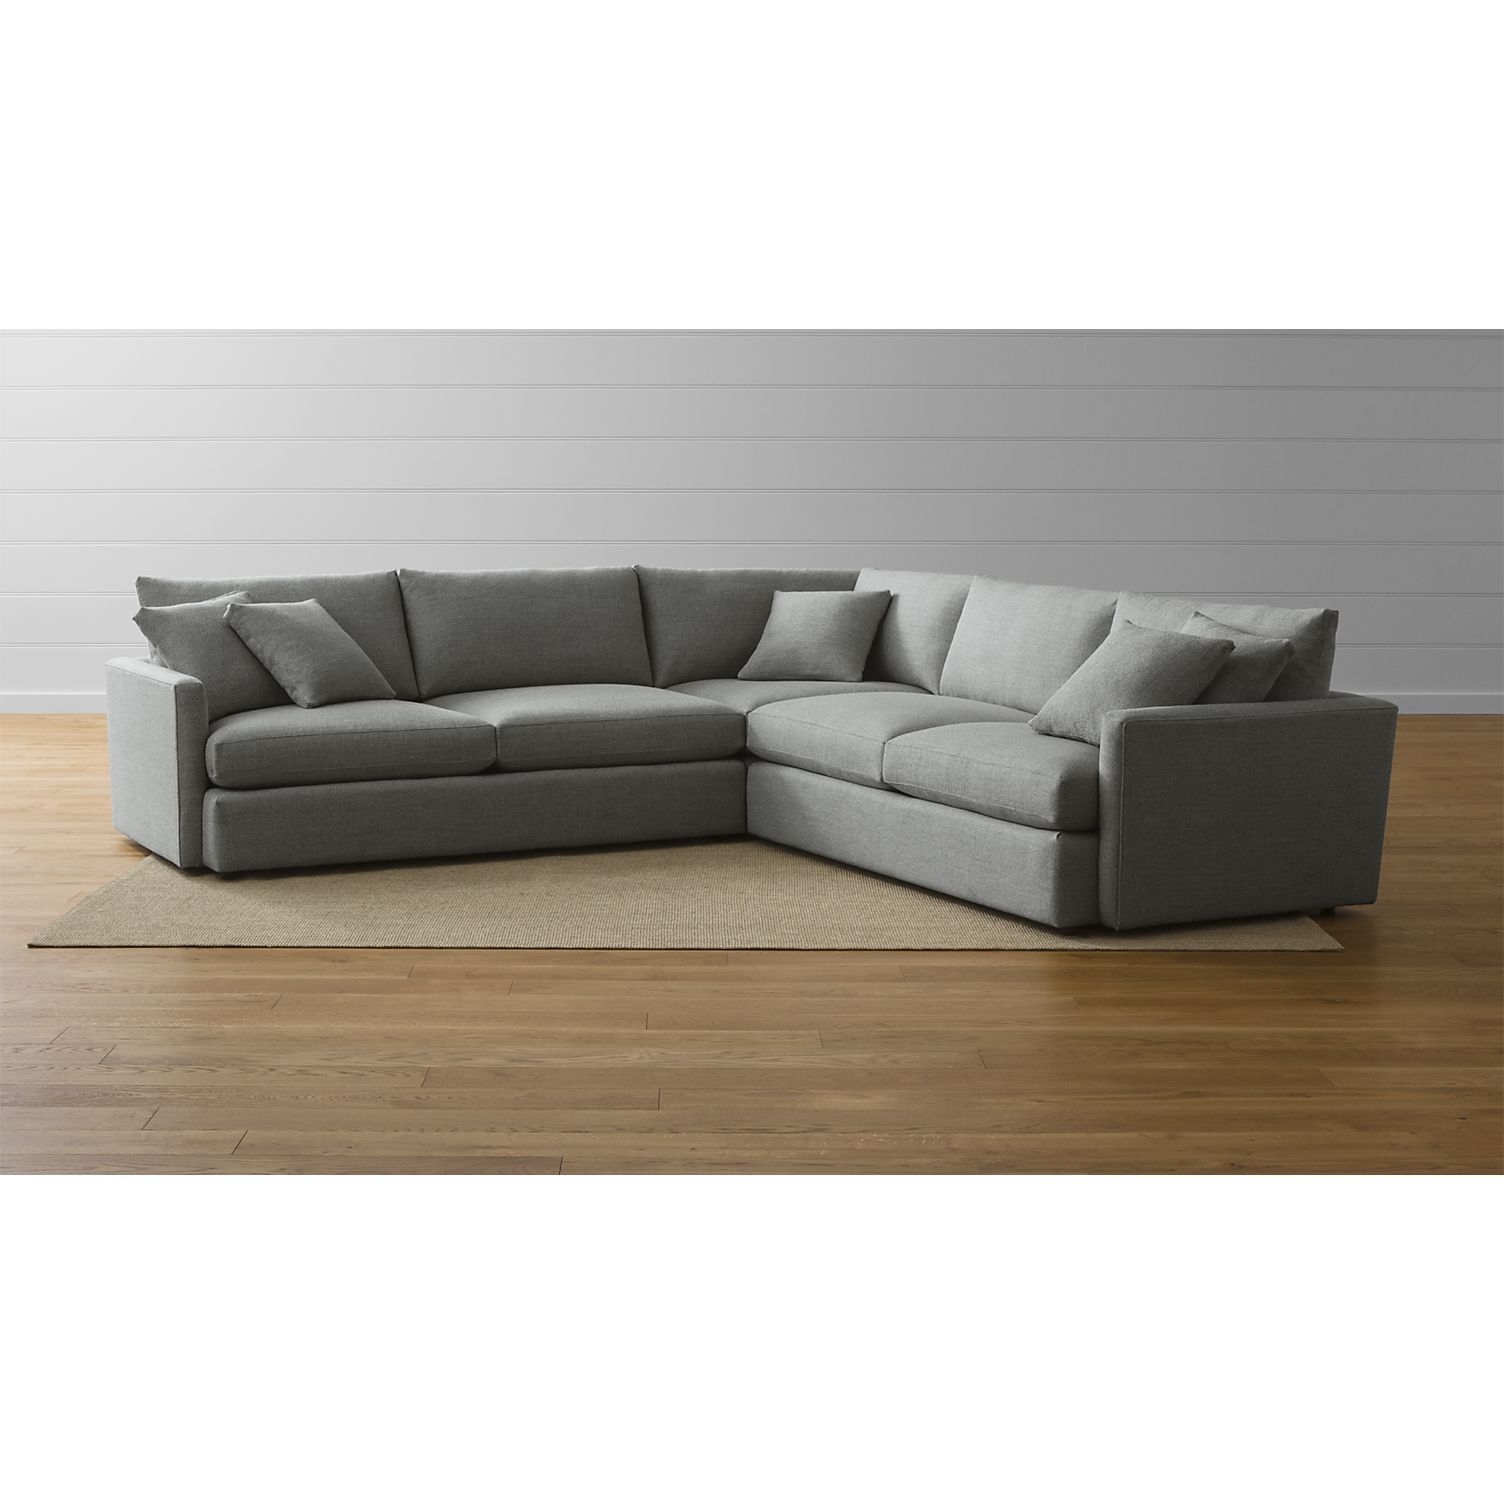 Lounge II 3 Piece Sectional Sofa Crate and Barrel